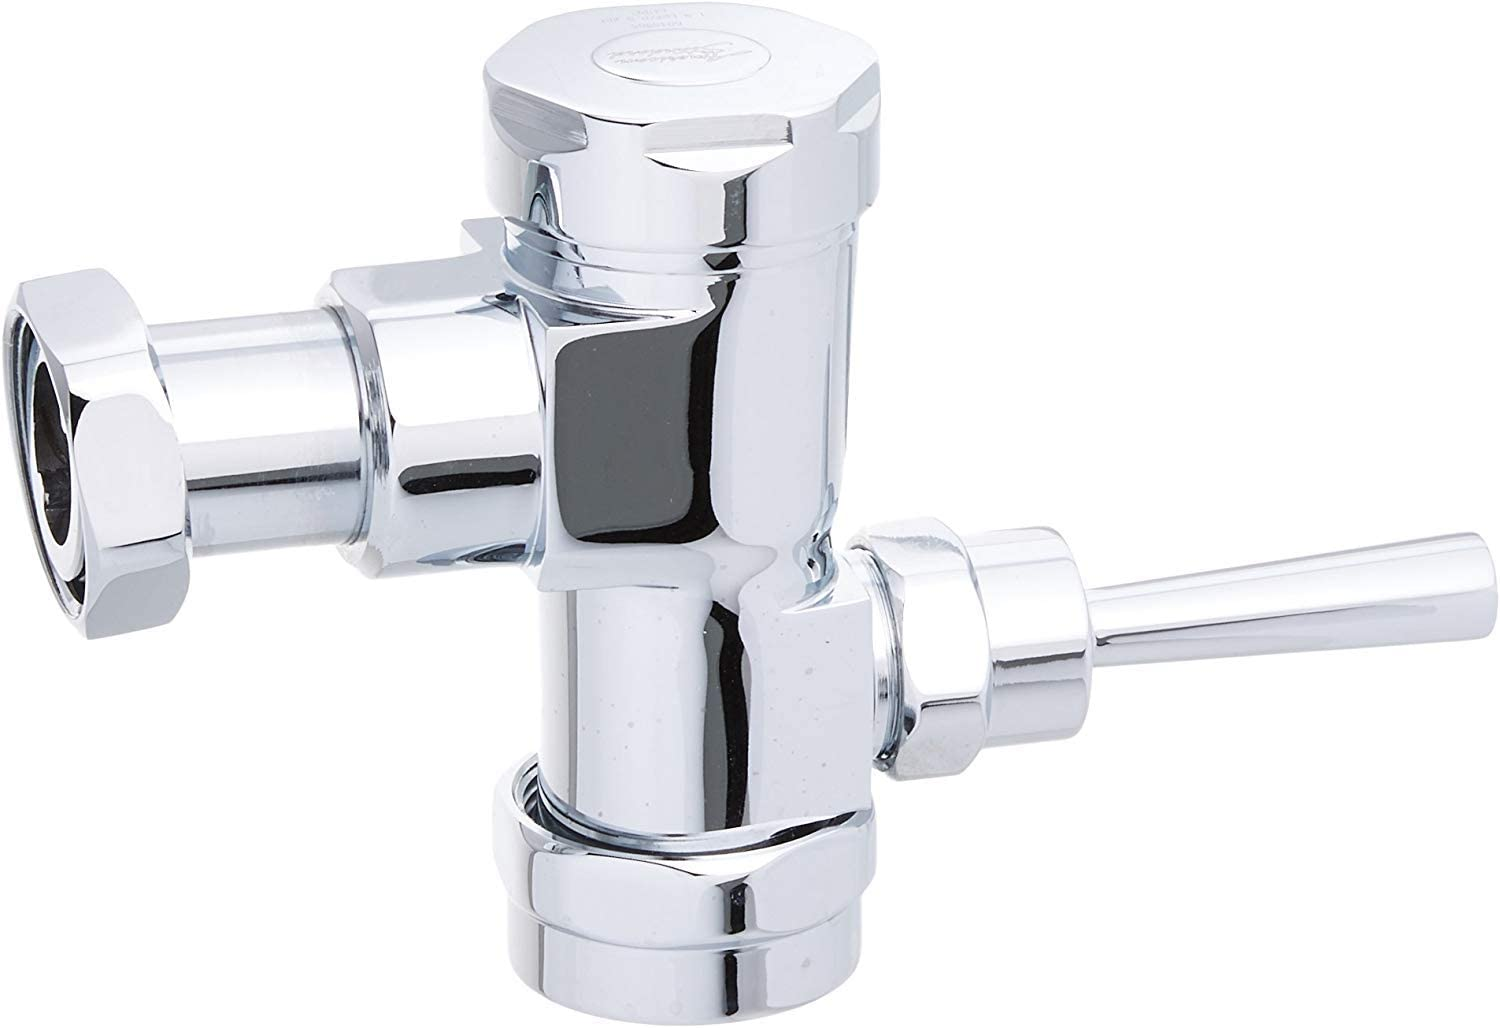 American Standard 6045.510.002 Exposed Manual Flowise 1.0 Gpf Urinal Flush Valve Only for Retrofit, Polished Chrome